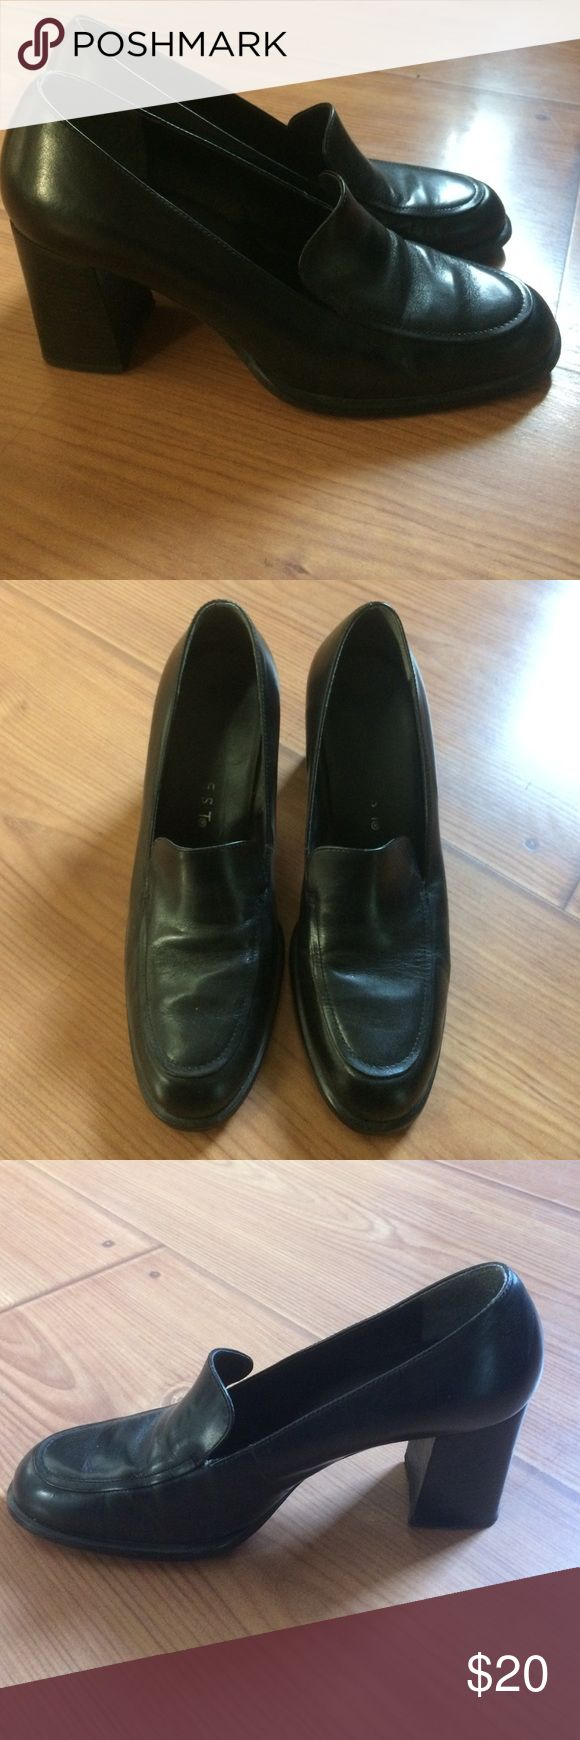 "Nine West black leather loafer heels Gently worn, very nice black leather, stylish, sleek, narrow, with a 3"" heal, excellent condition Nine West Shoes Heels"